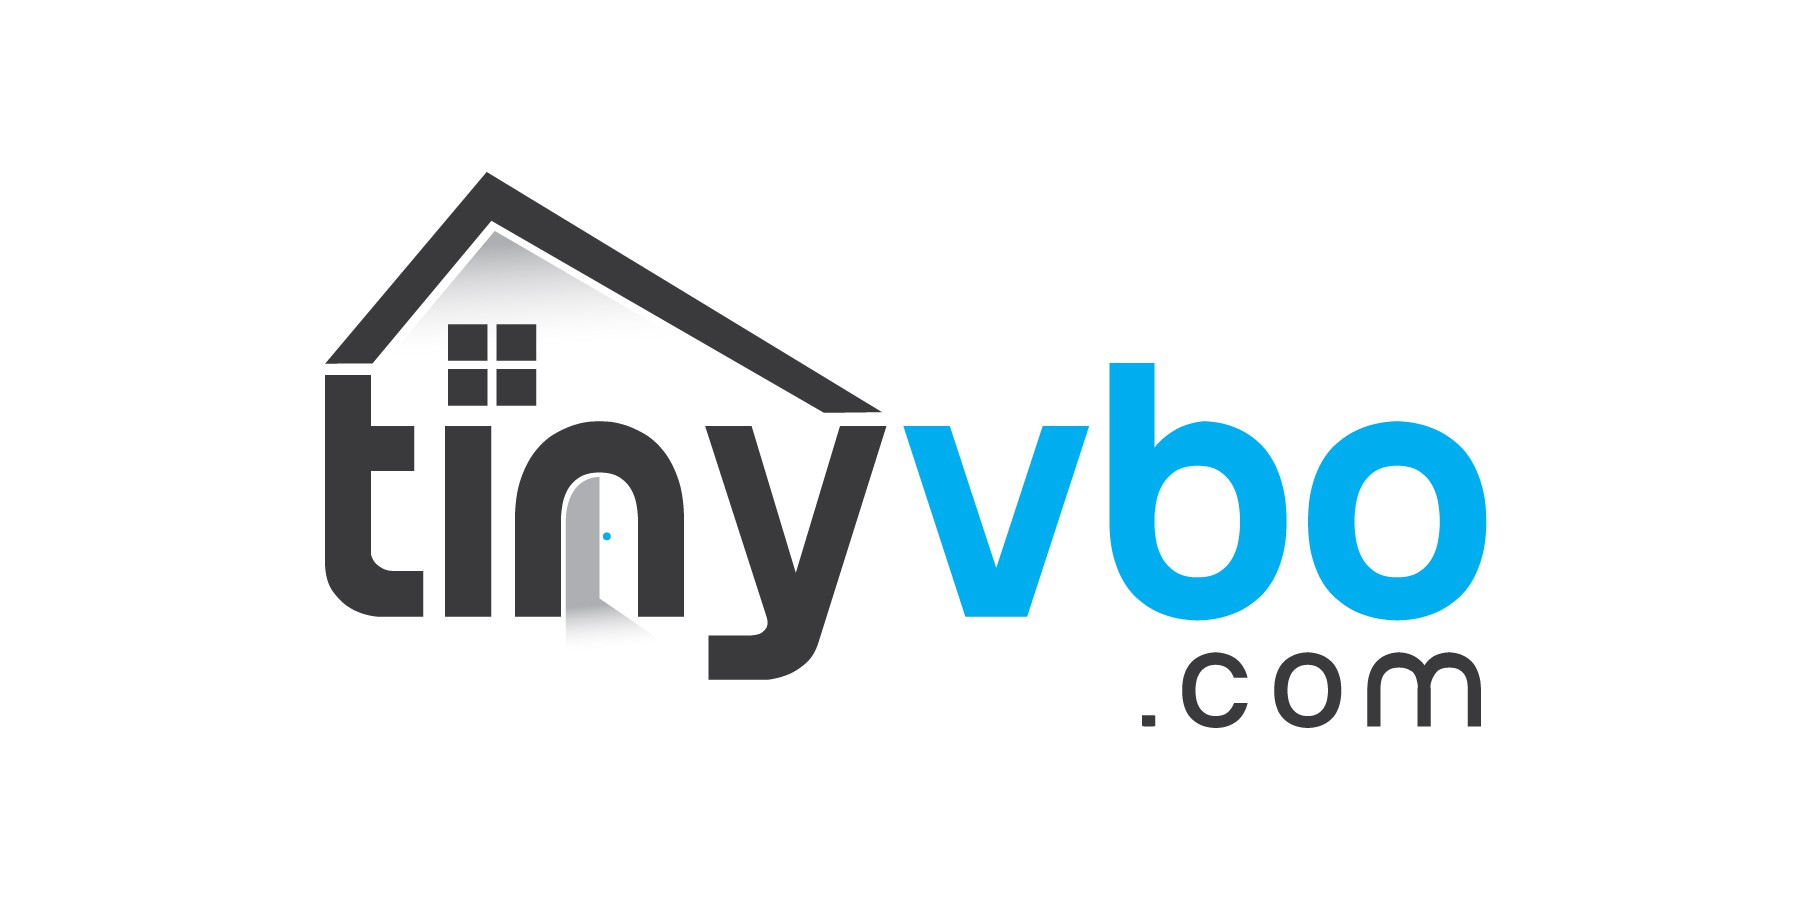 Capture the whimsical spirit and minimalist ideal of the tiny house movement for tinyvbo.com!